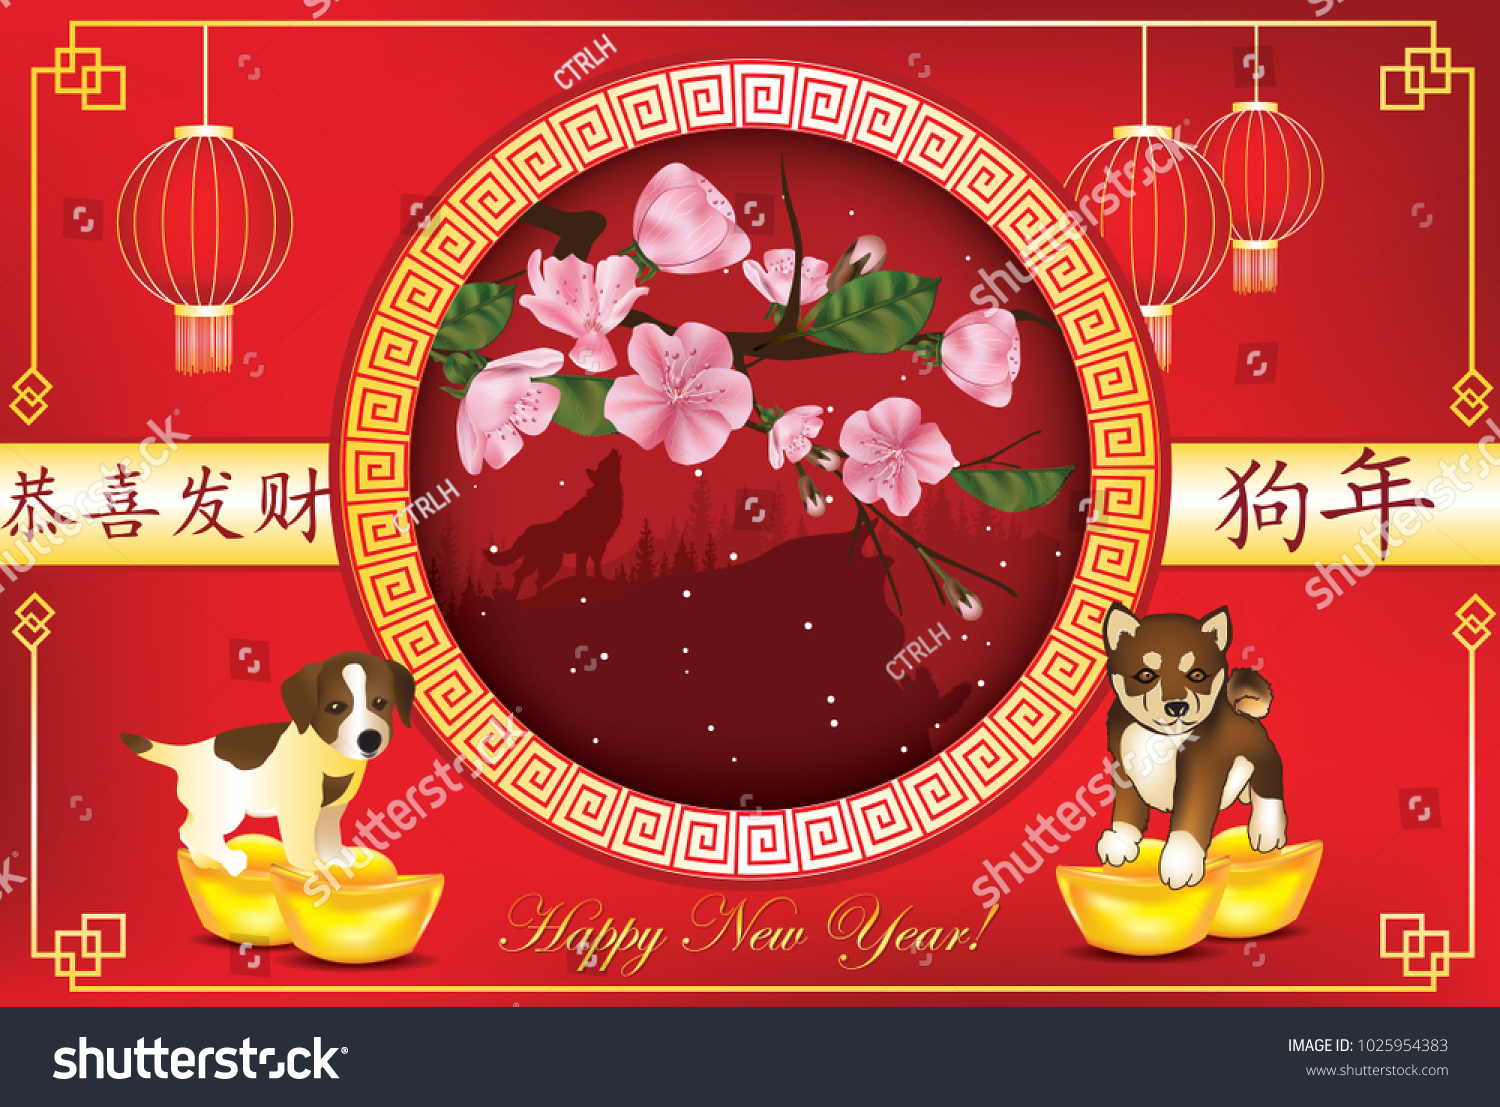 Happy chinese new year 2018 greeting card with text in chinese and happy chinese new year 2018 greeting card with text in chinese and english ideograms translation congratulations and make fortune get rich m4hsunfo